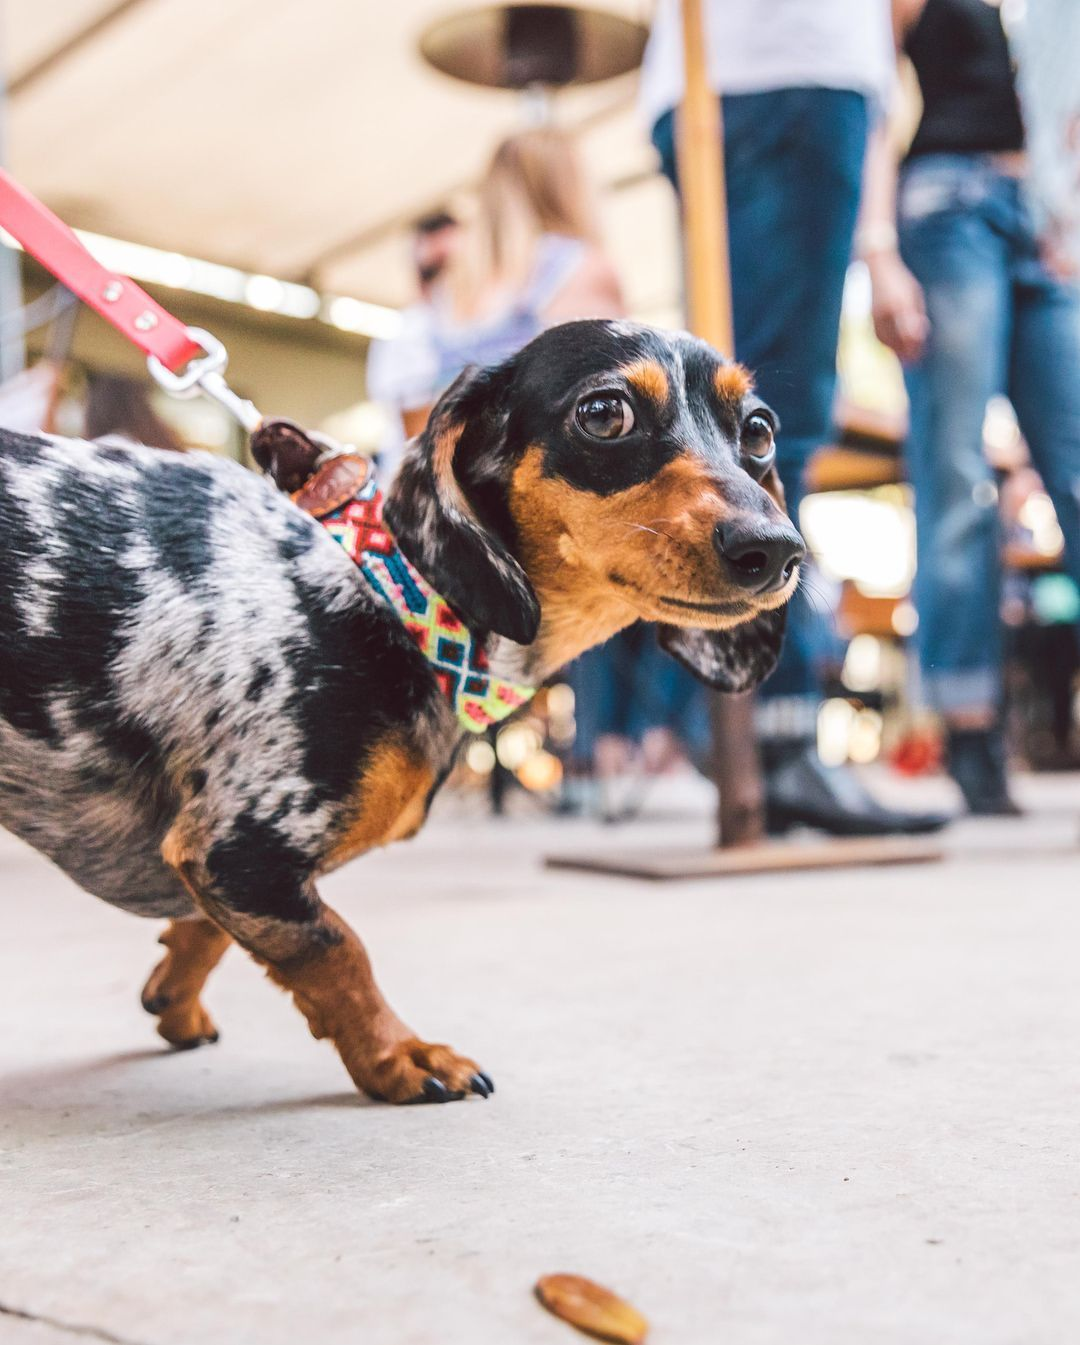 Reese The 1 5yr Old Dachshund Working On Her Runway Modeling